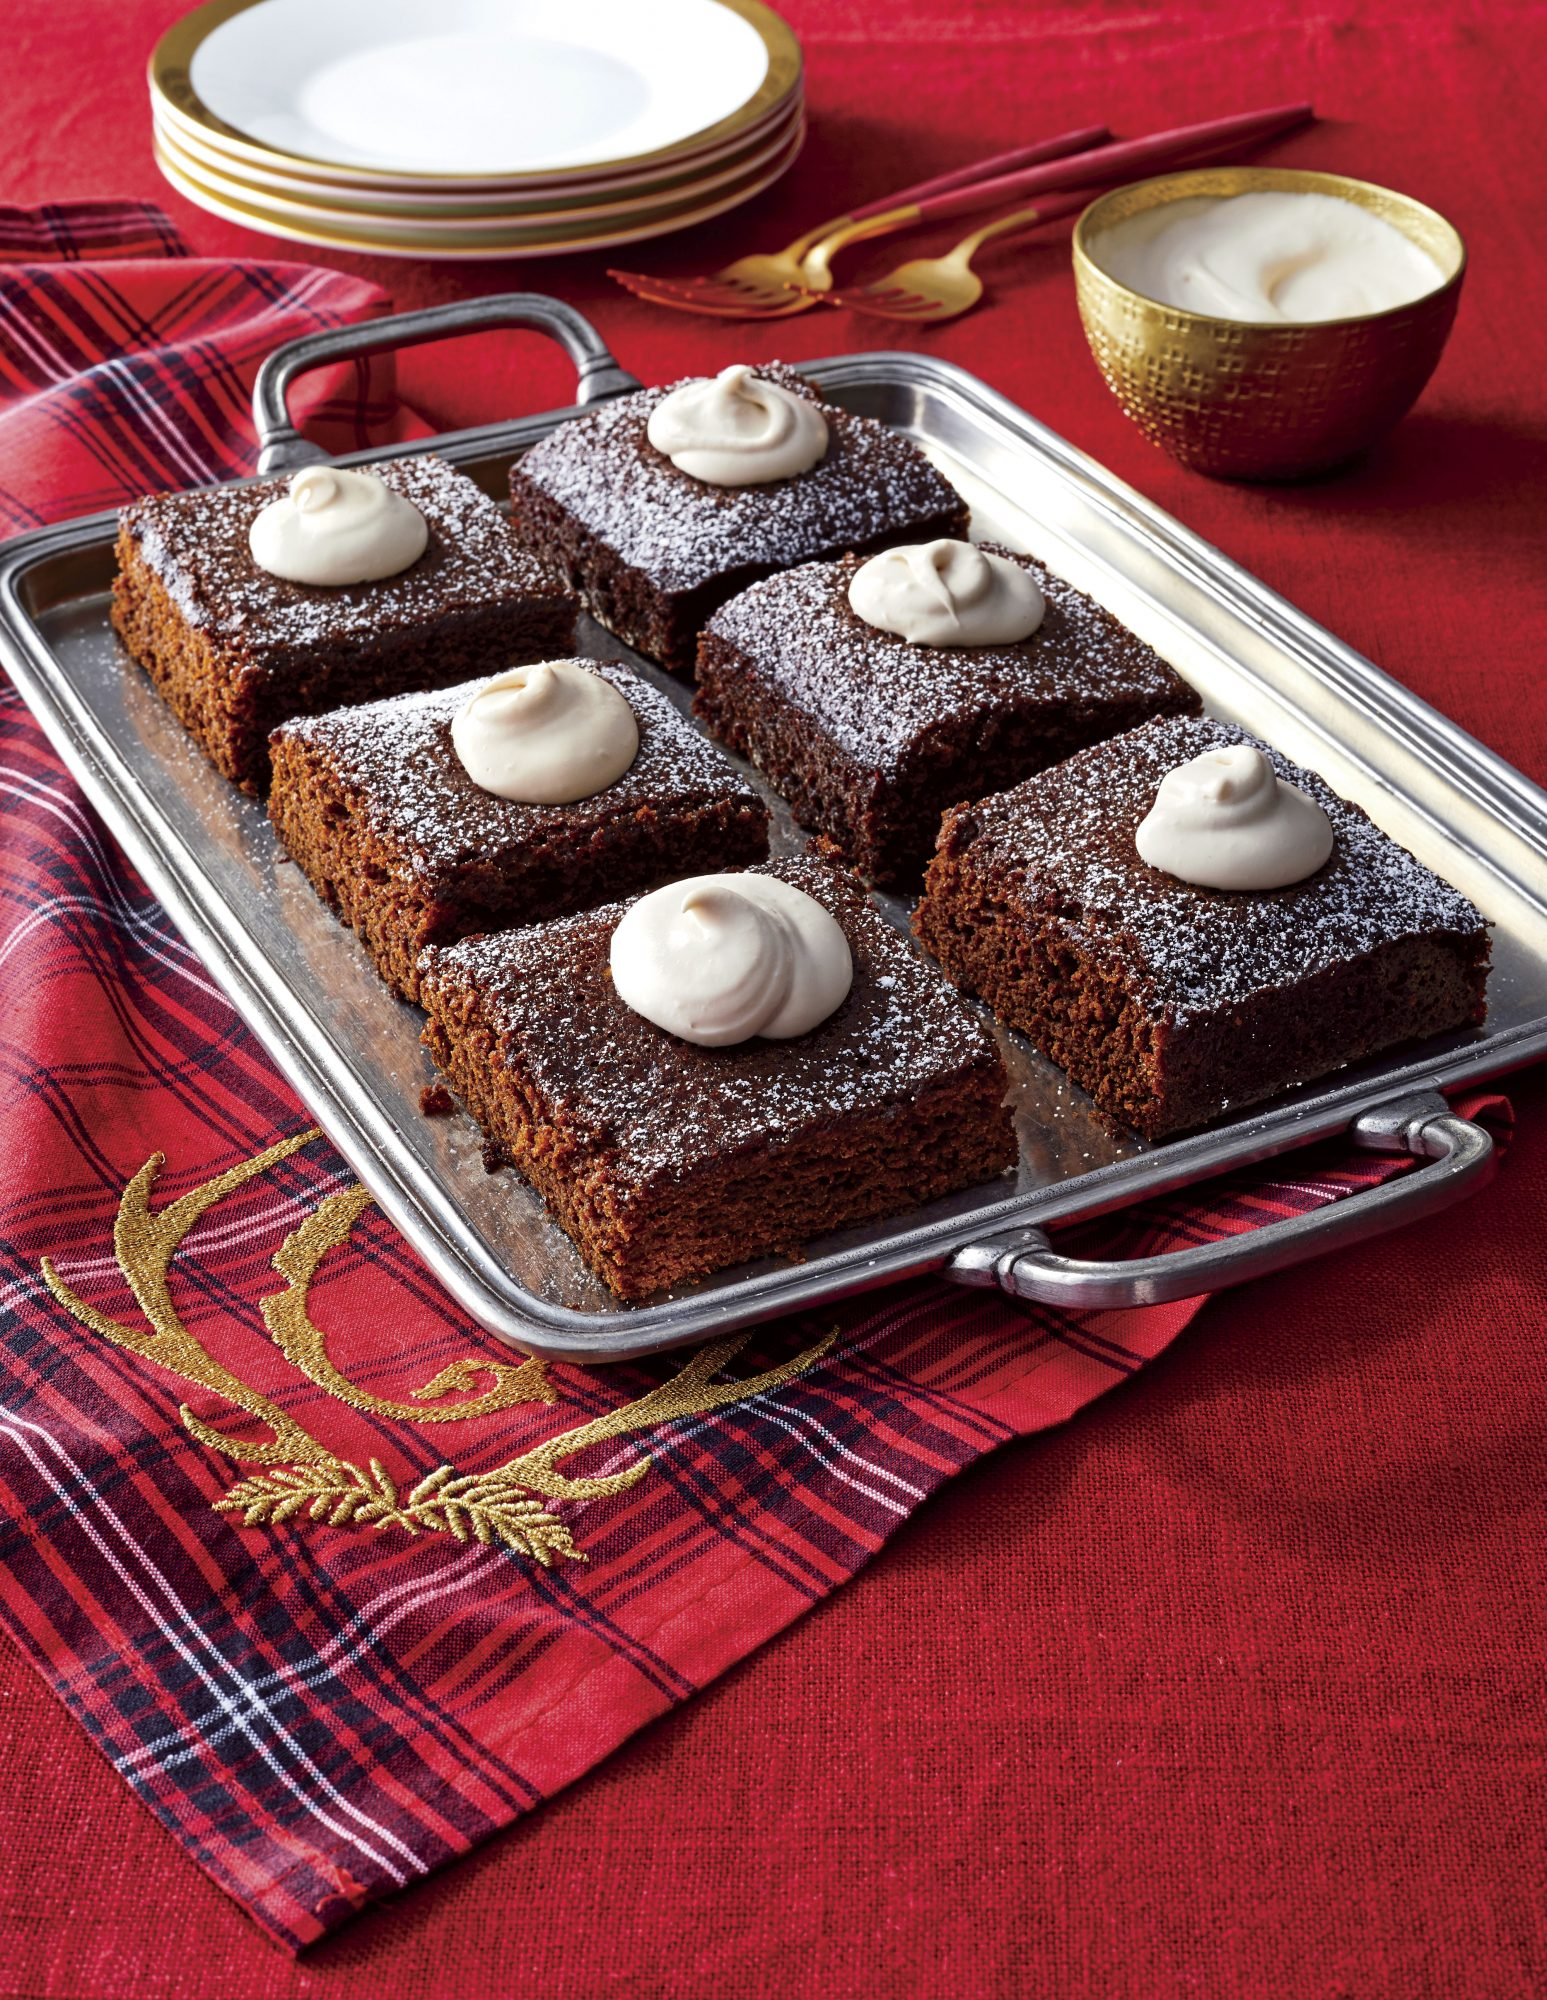 50 Christmas Desserts That'll Feed a Crowd